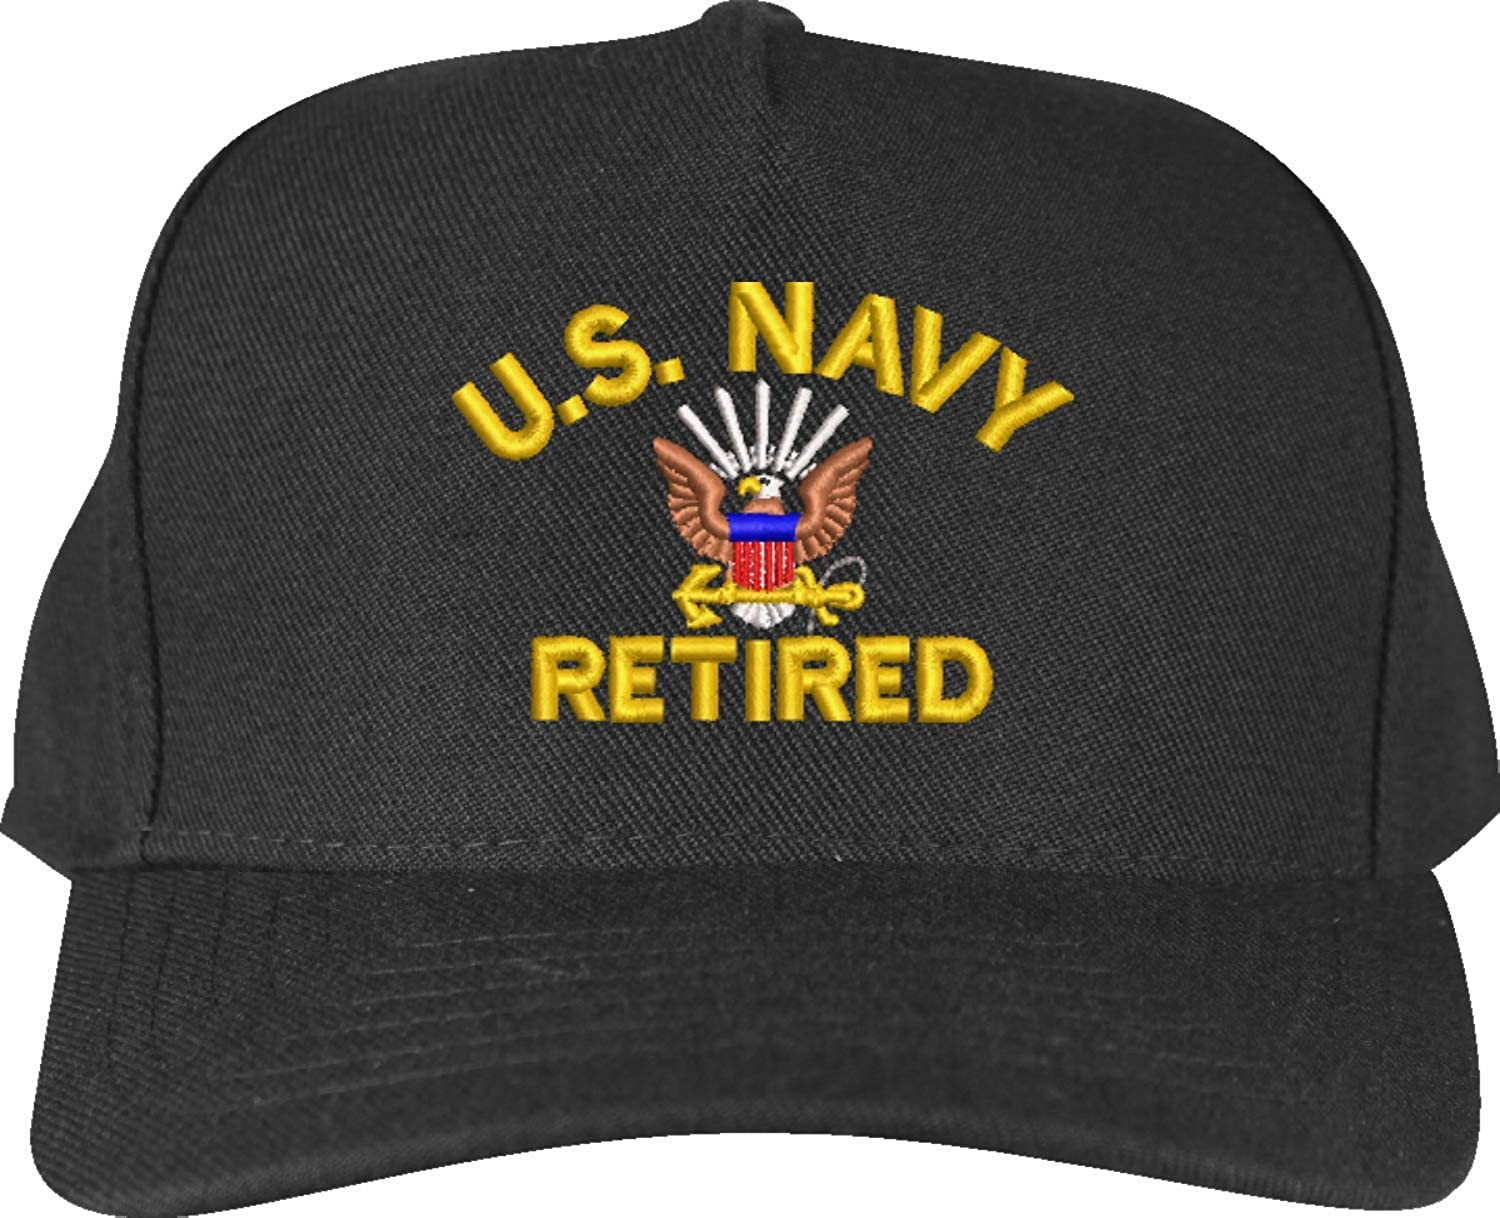 MilitaryBest U.S Navy Retired Embroidered Cap